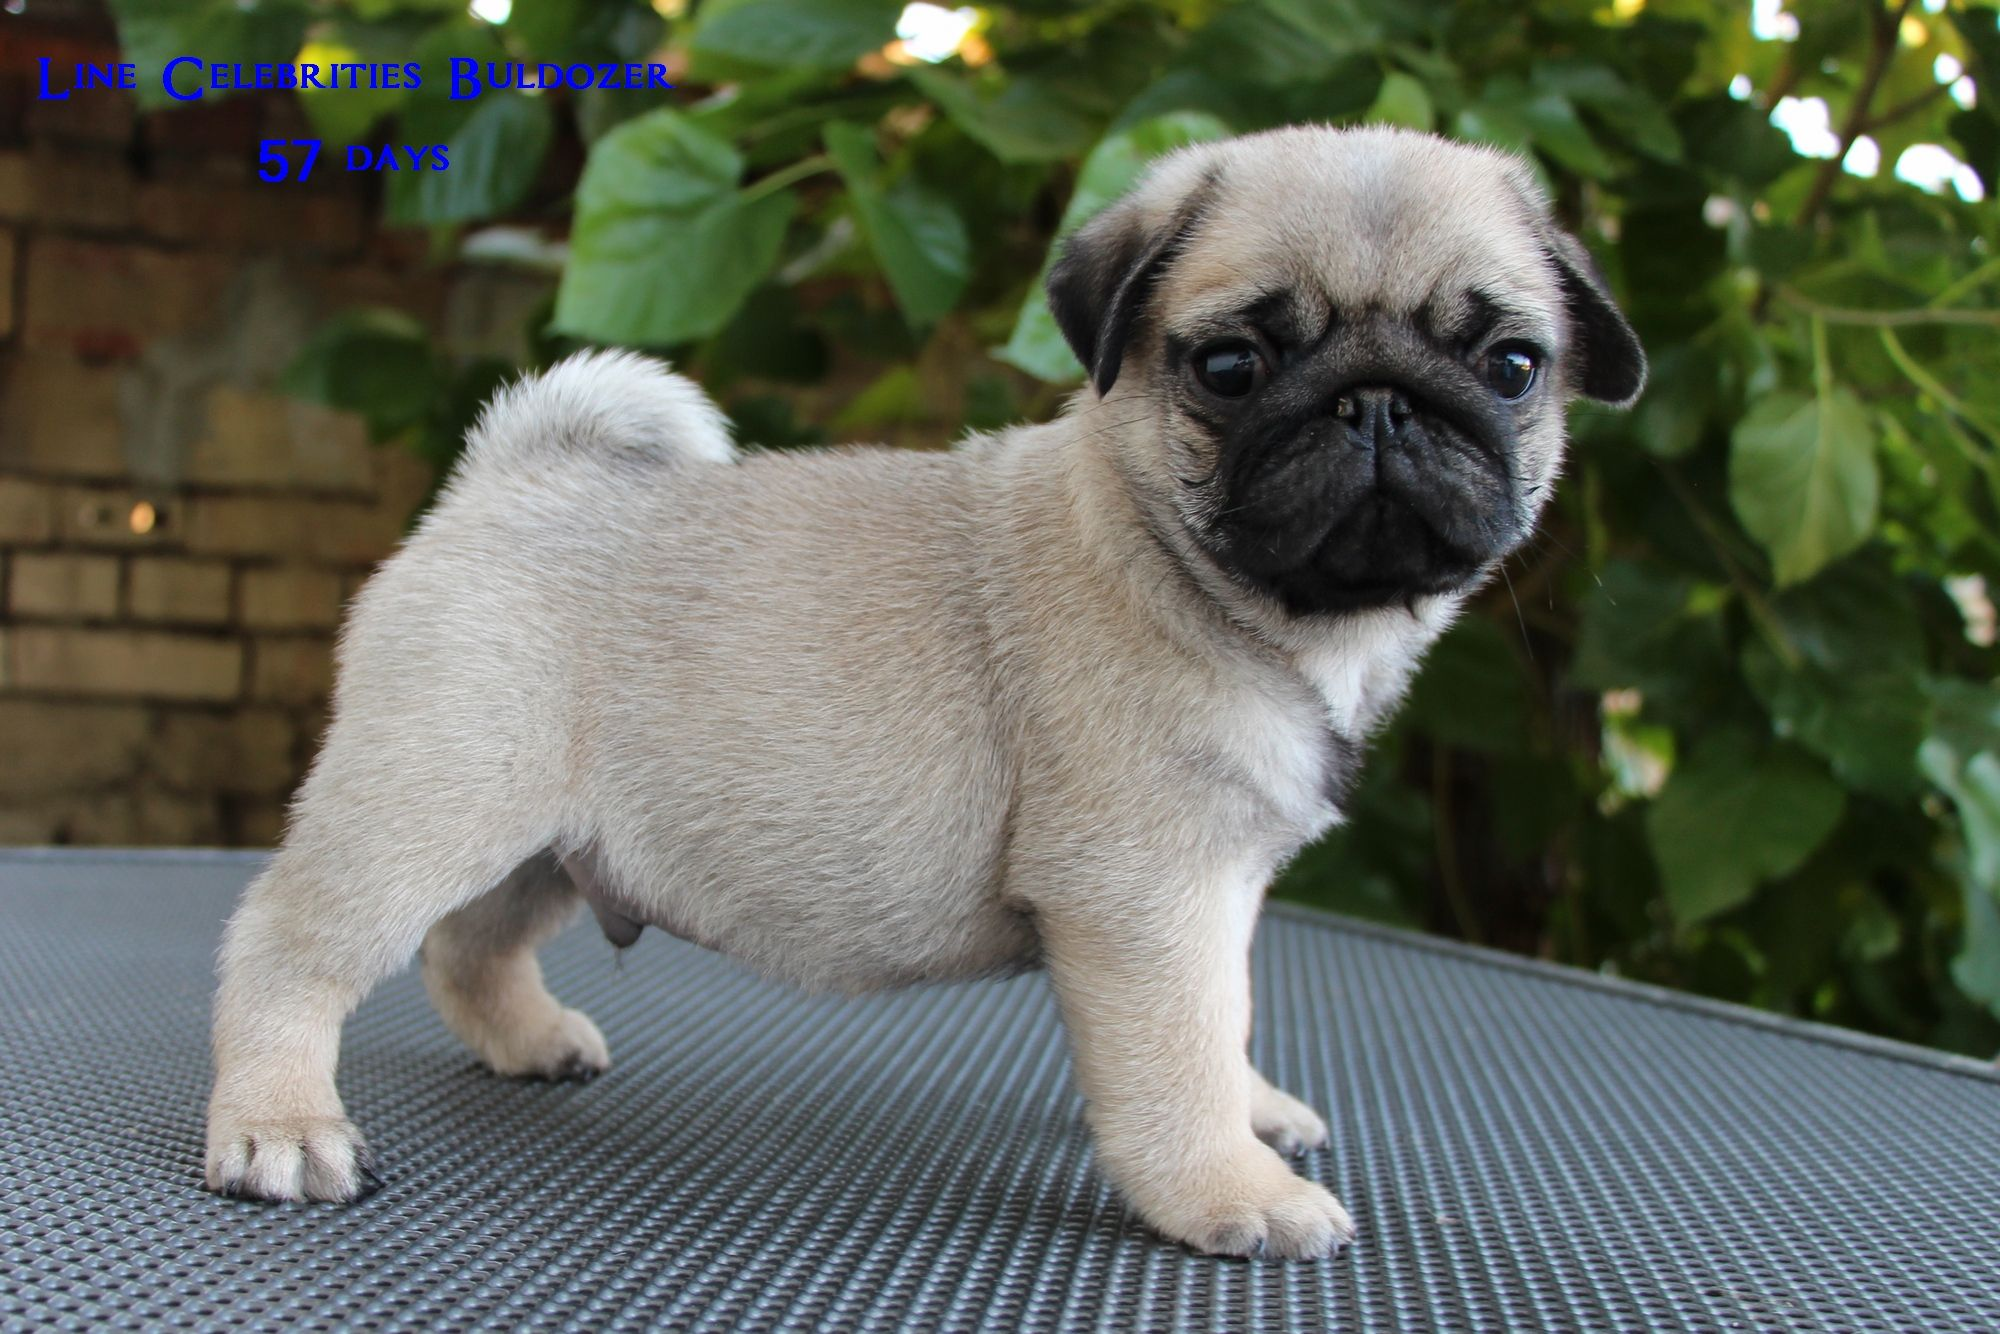 Pug Dog Puppies For Sale Worldwide Delivery Pug Puppies Pug Dog